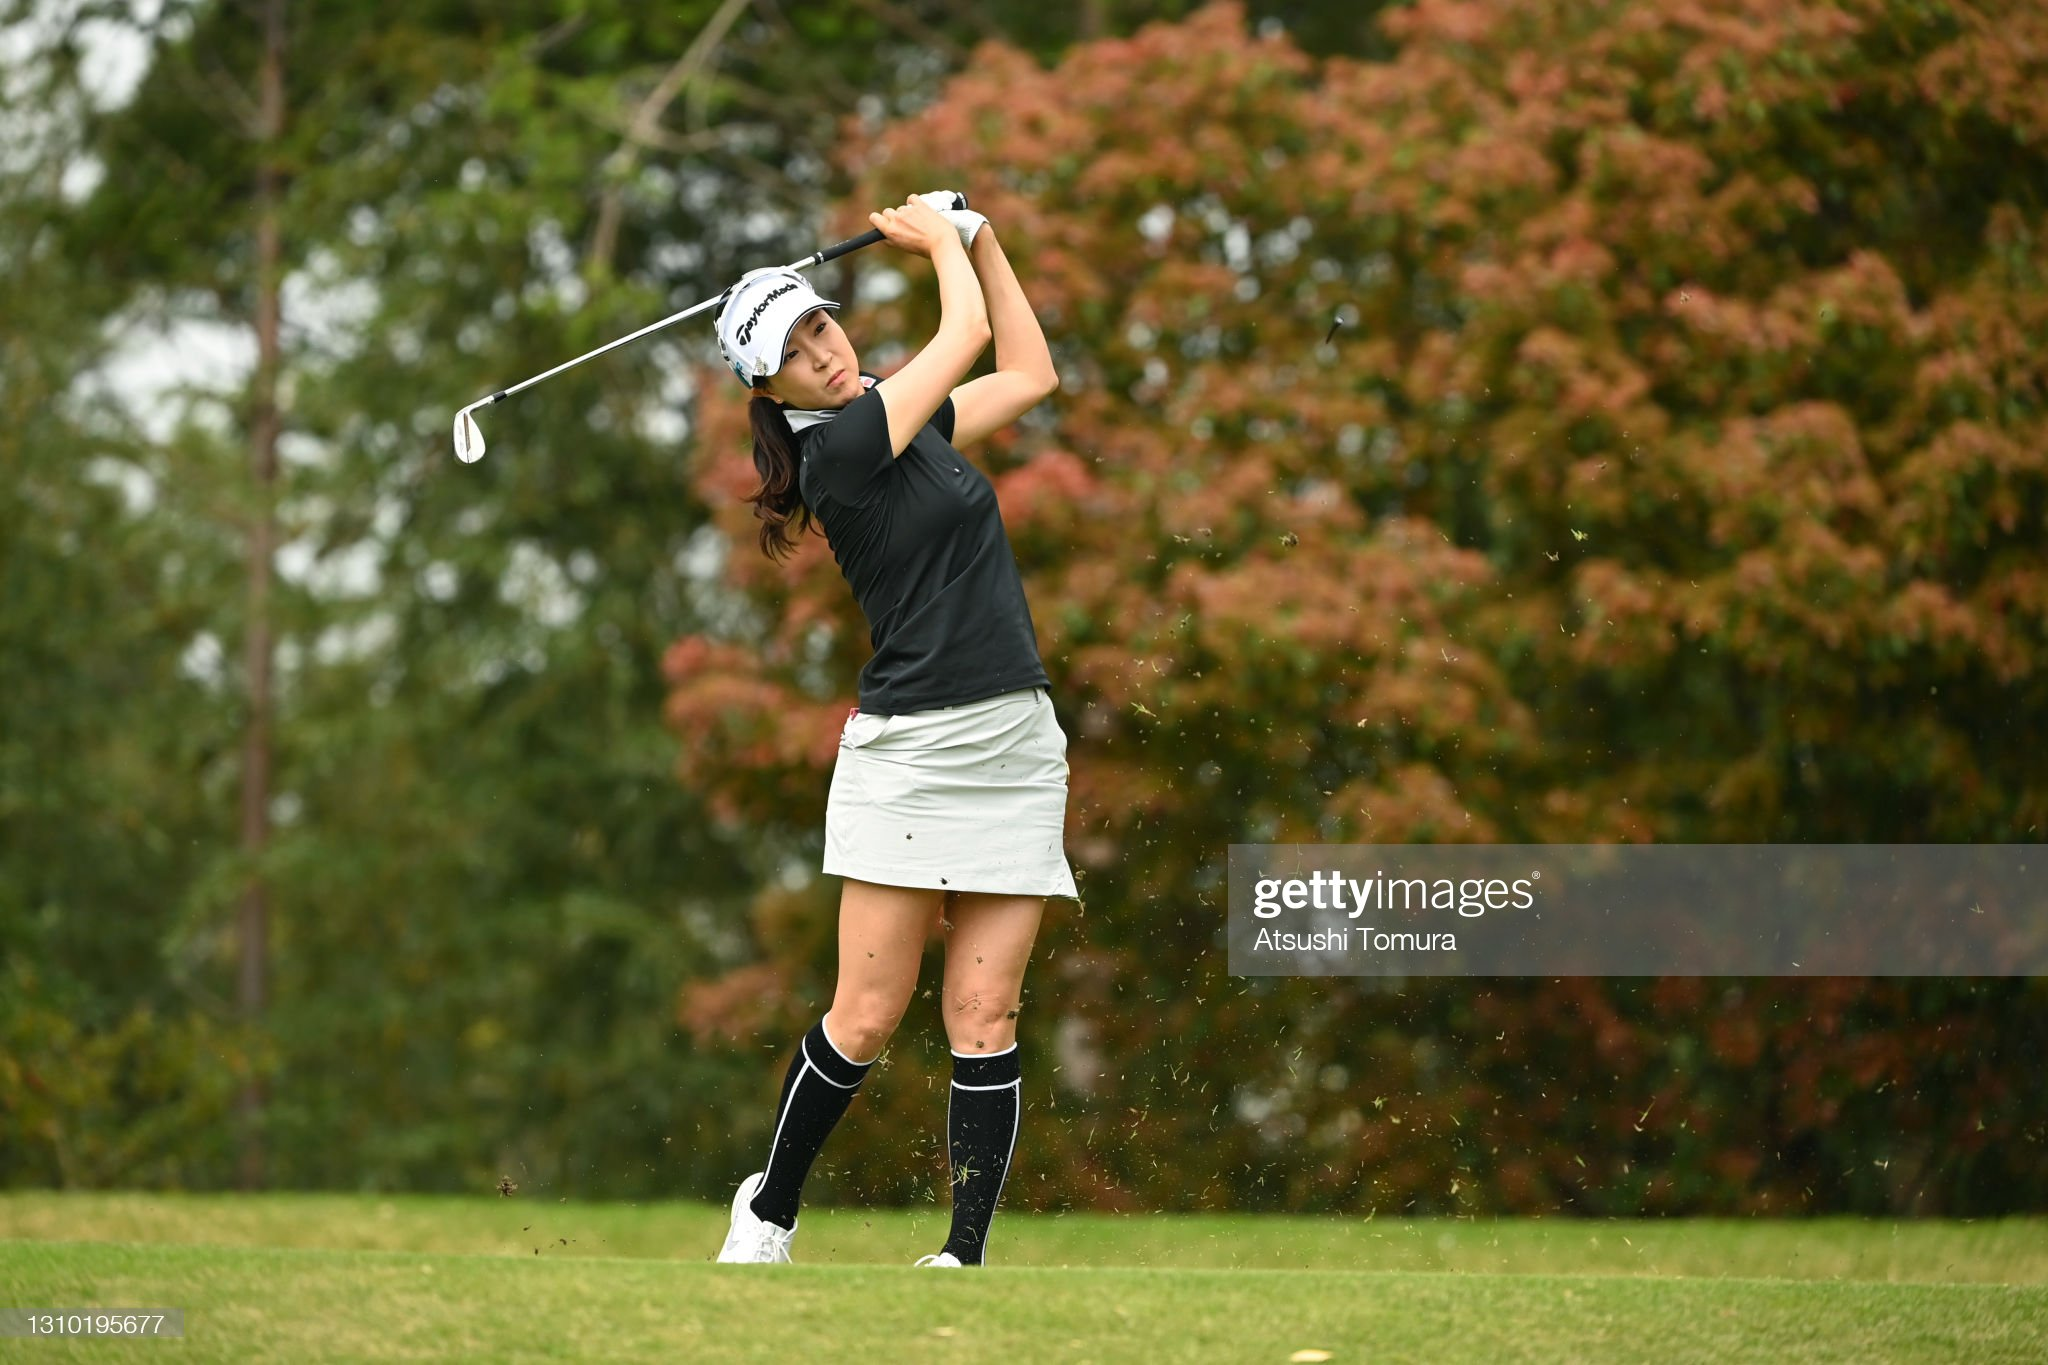 https://media.gettyimages.com/photos/chaeyoung-yoon-of-south-korea-hits-her-tee-shot-on-the-11th-hole-the-picture-id1310195677?s=2048x2048